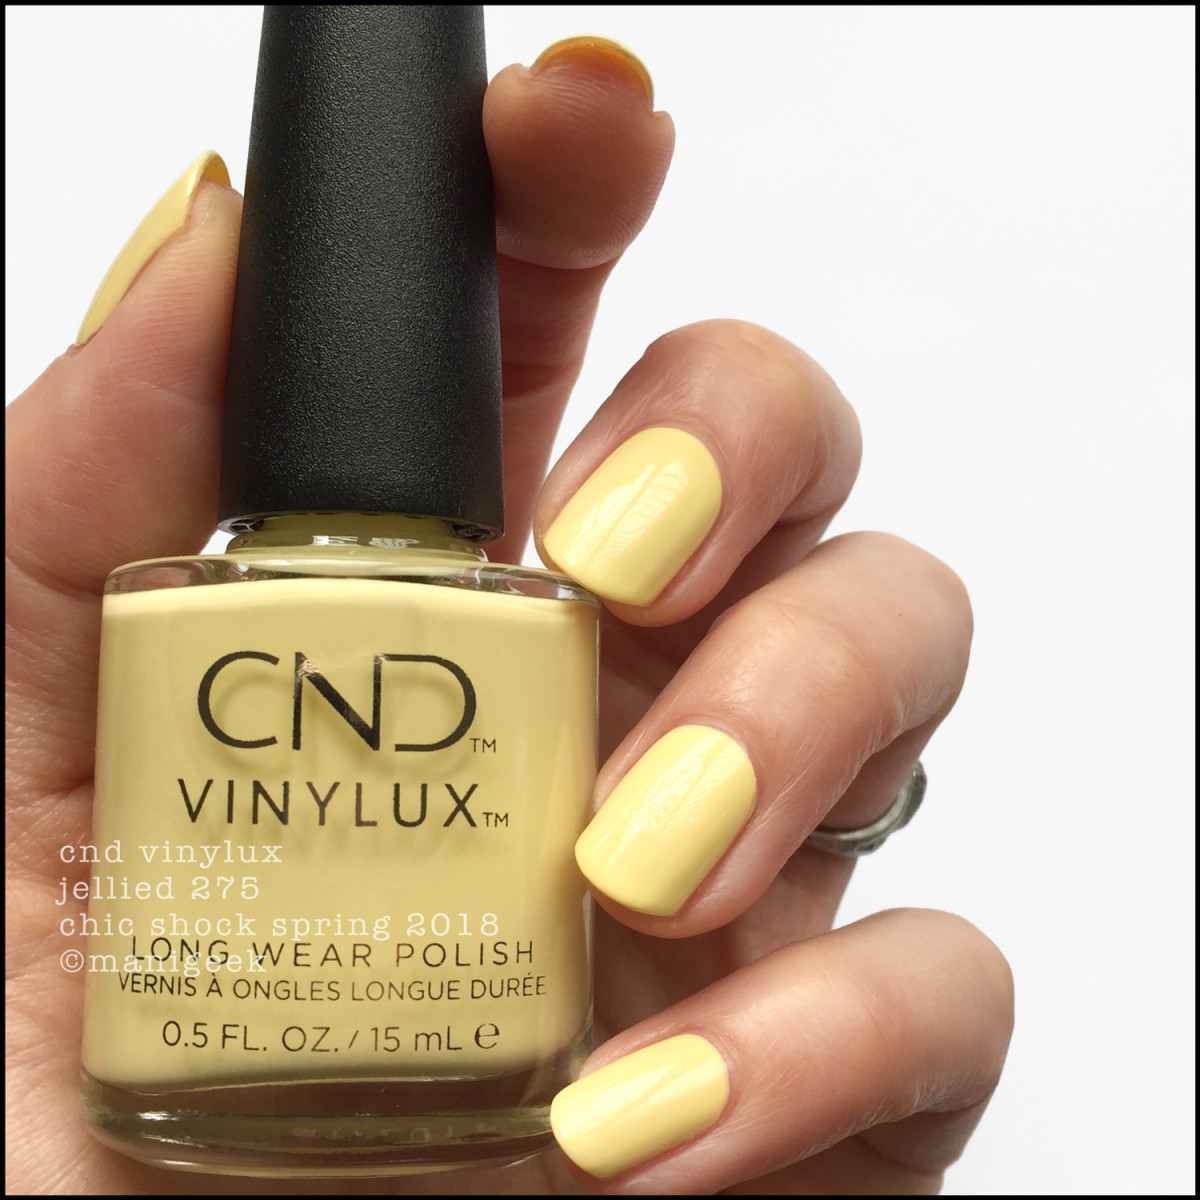 CND Vinylux Jellied 275 - Chic Shock Collection Spring 2018